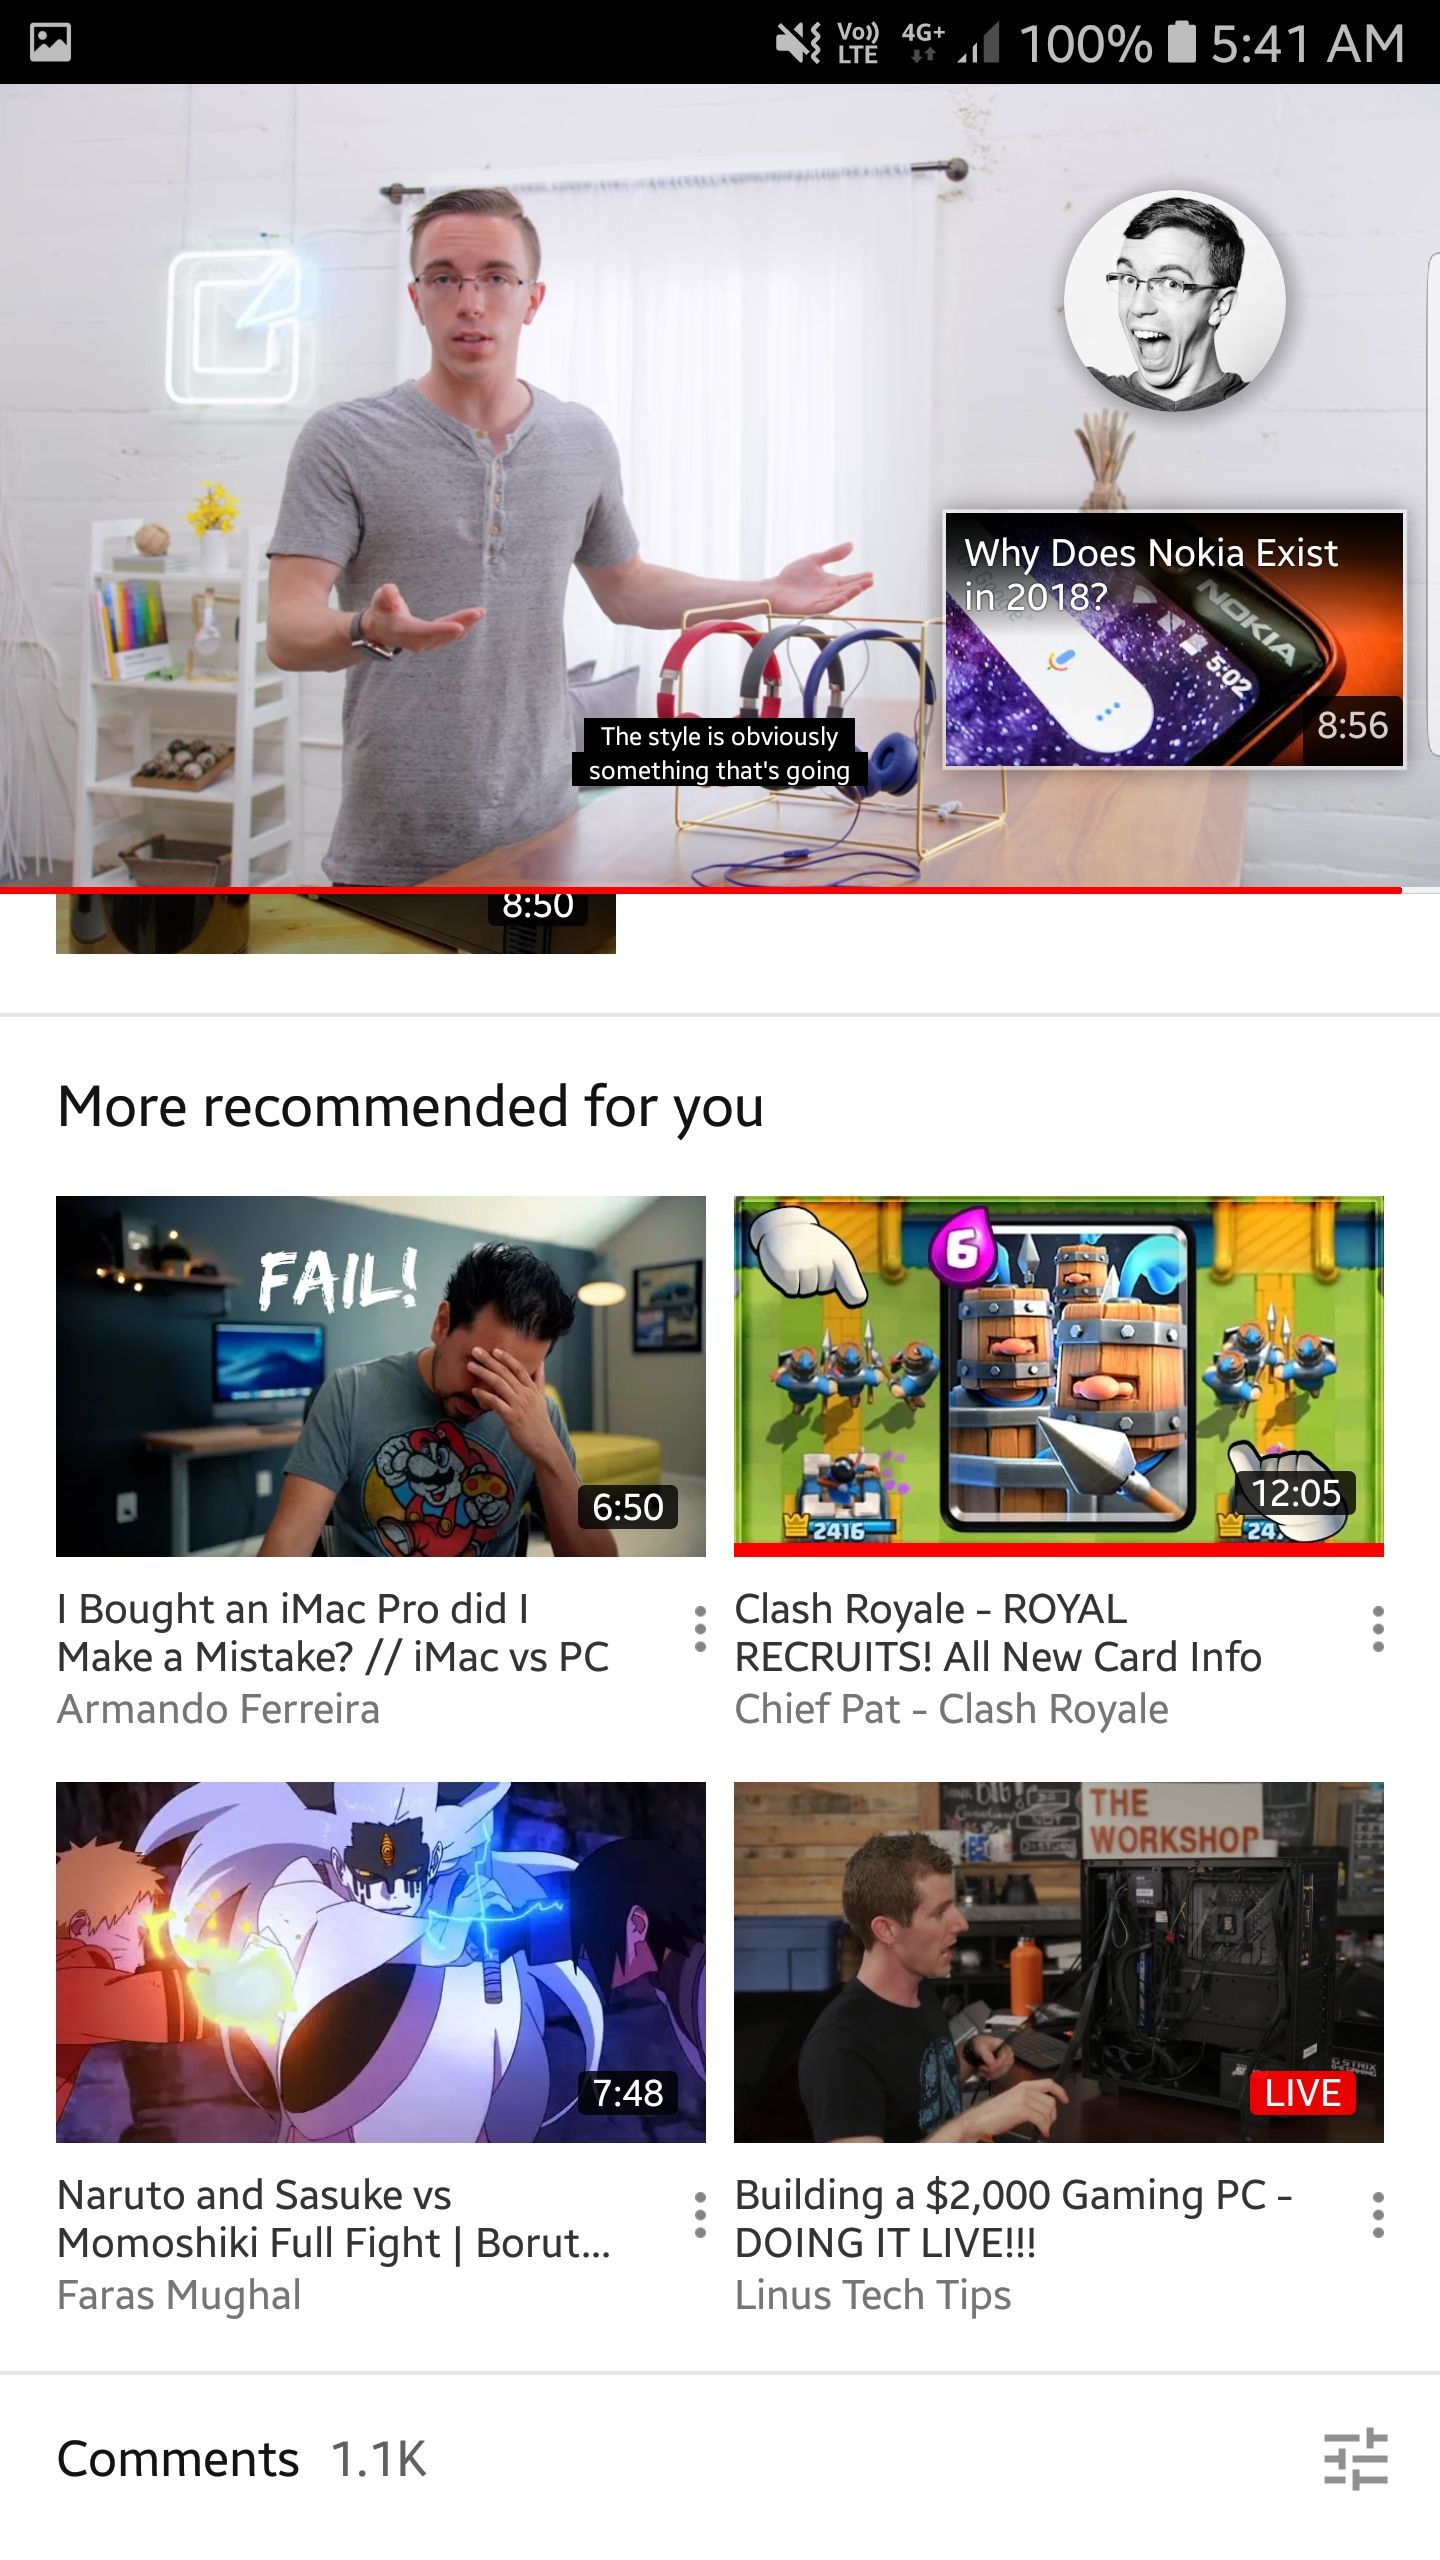 how to get recommended videos back on youtube